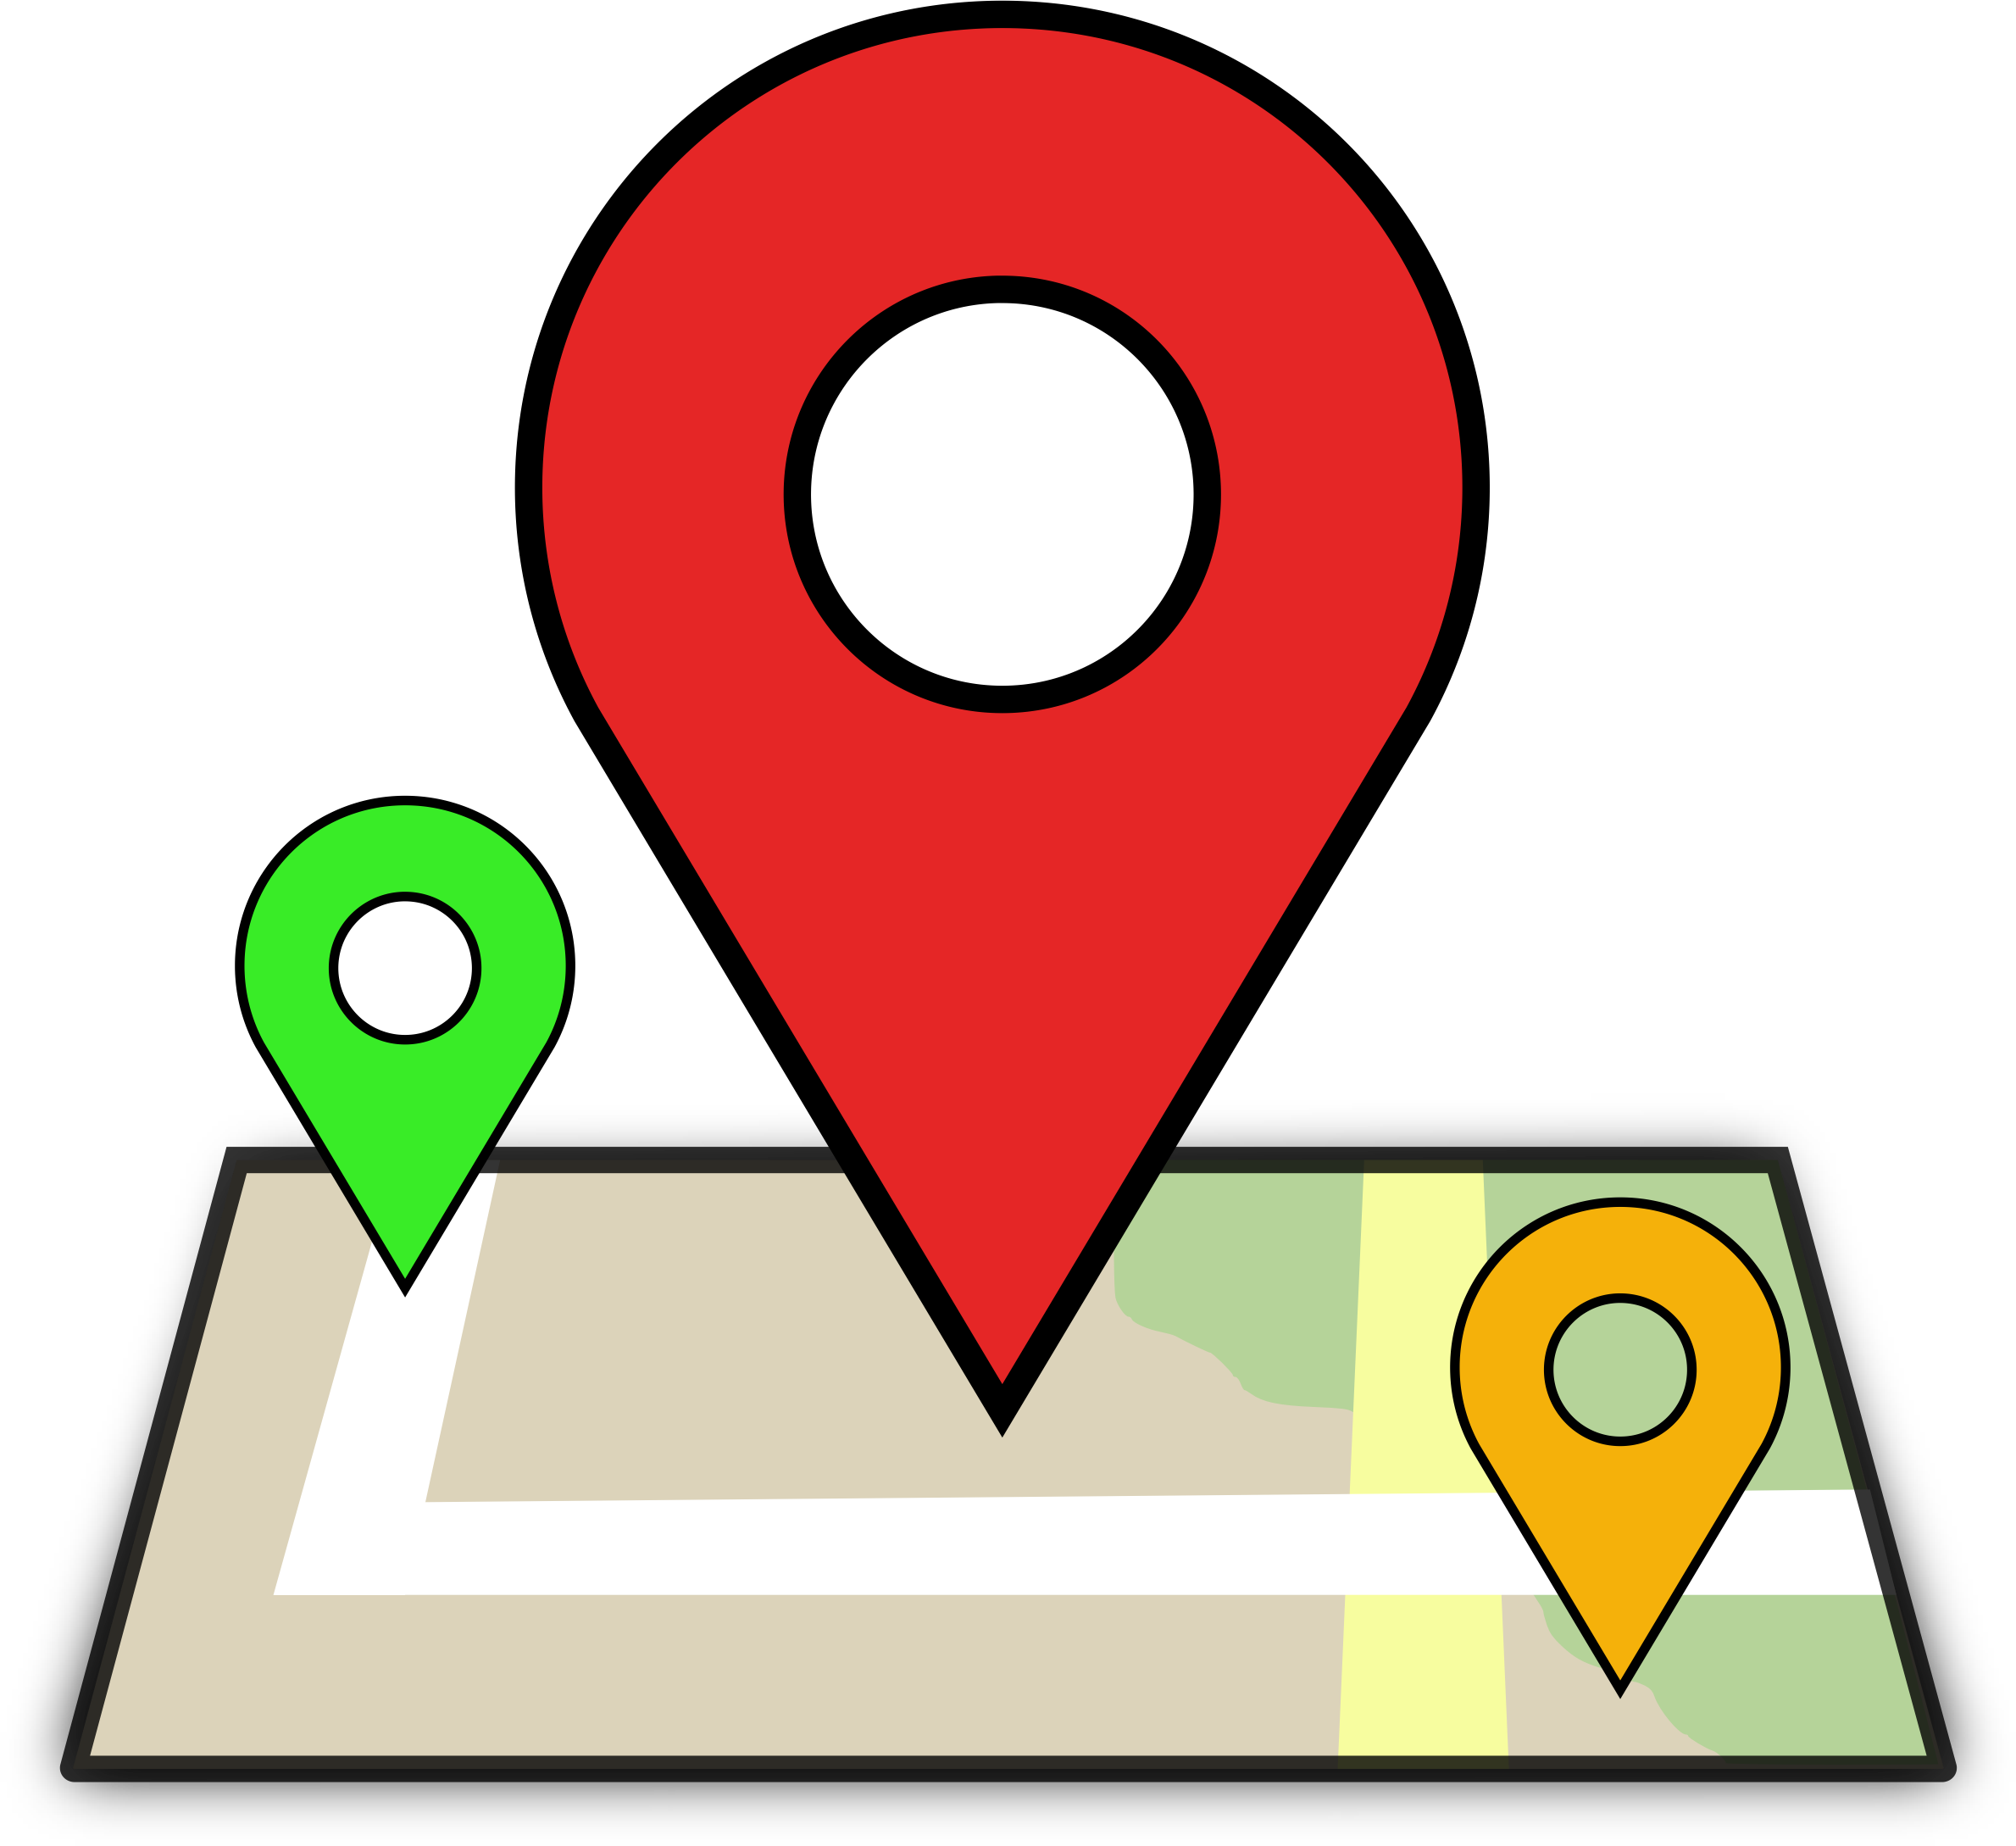 Map Computer Location Icon Icons Free Transparent Image HD PNG Image